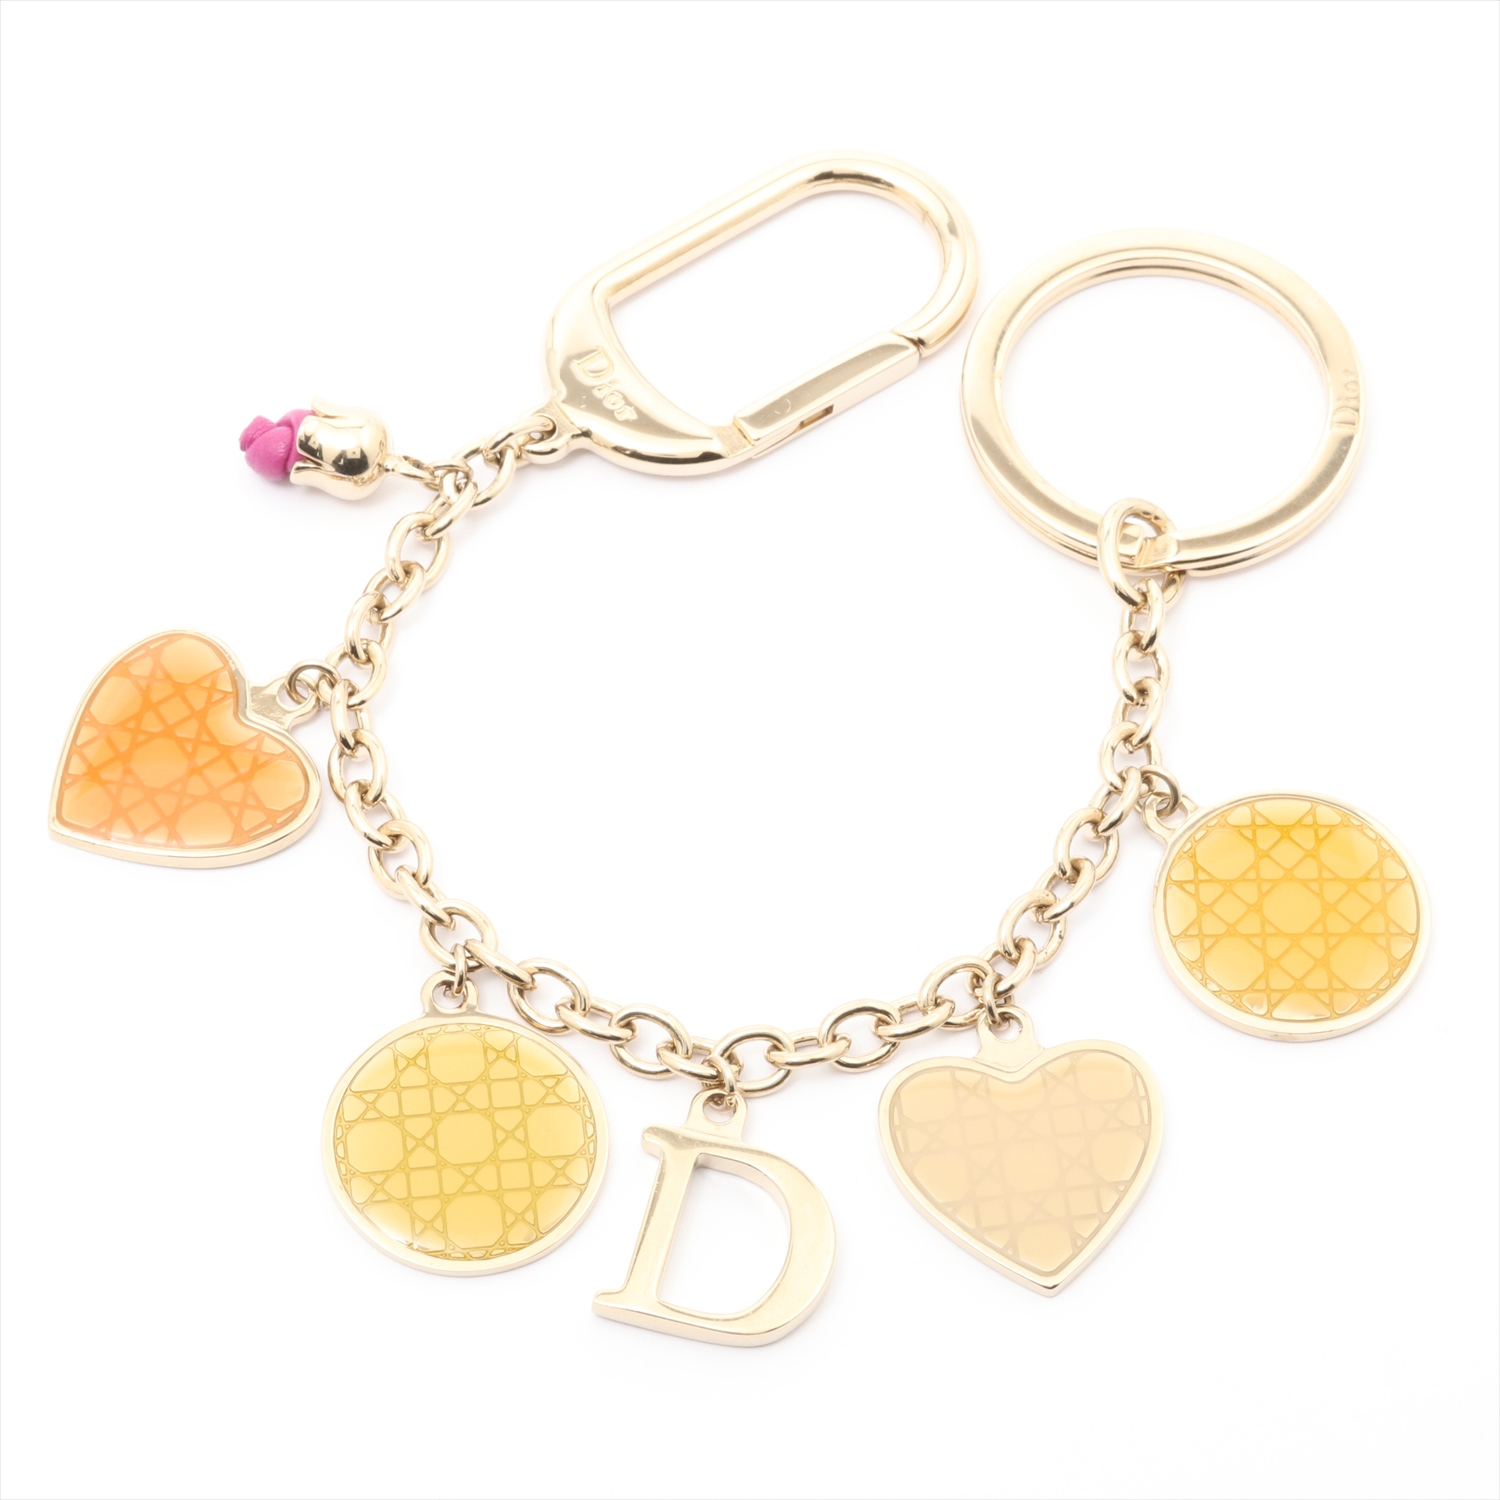 [Used article] Christian Dior key chain metal material gold bag charm